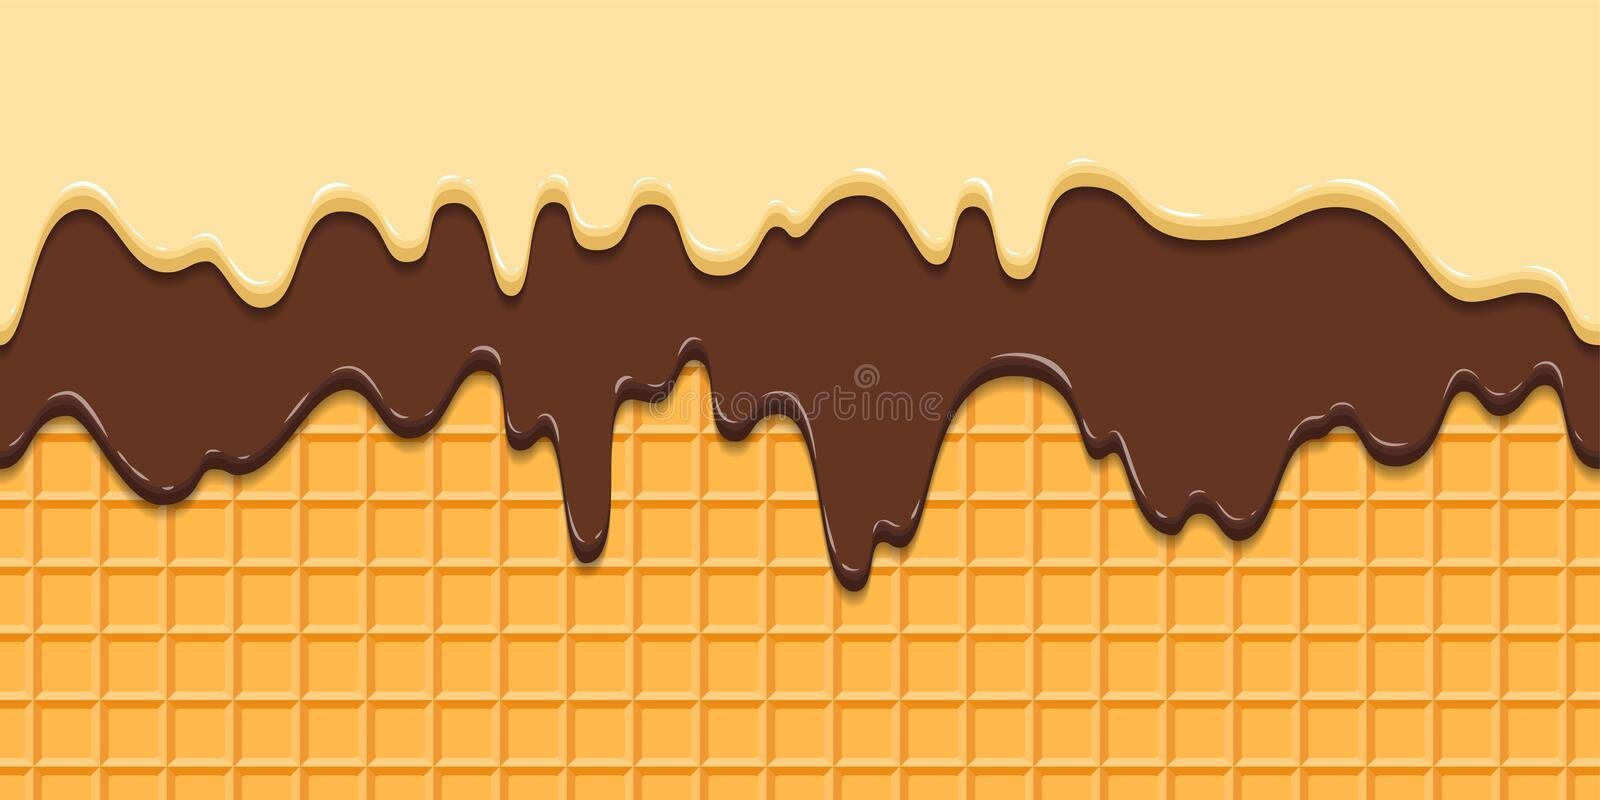 Seamless pattern. Current icing and chocolate on waffle texture background, waffle cone with ice cream. Cartoon stock illustration